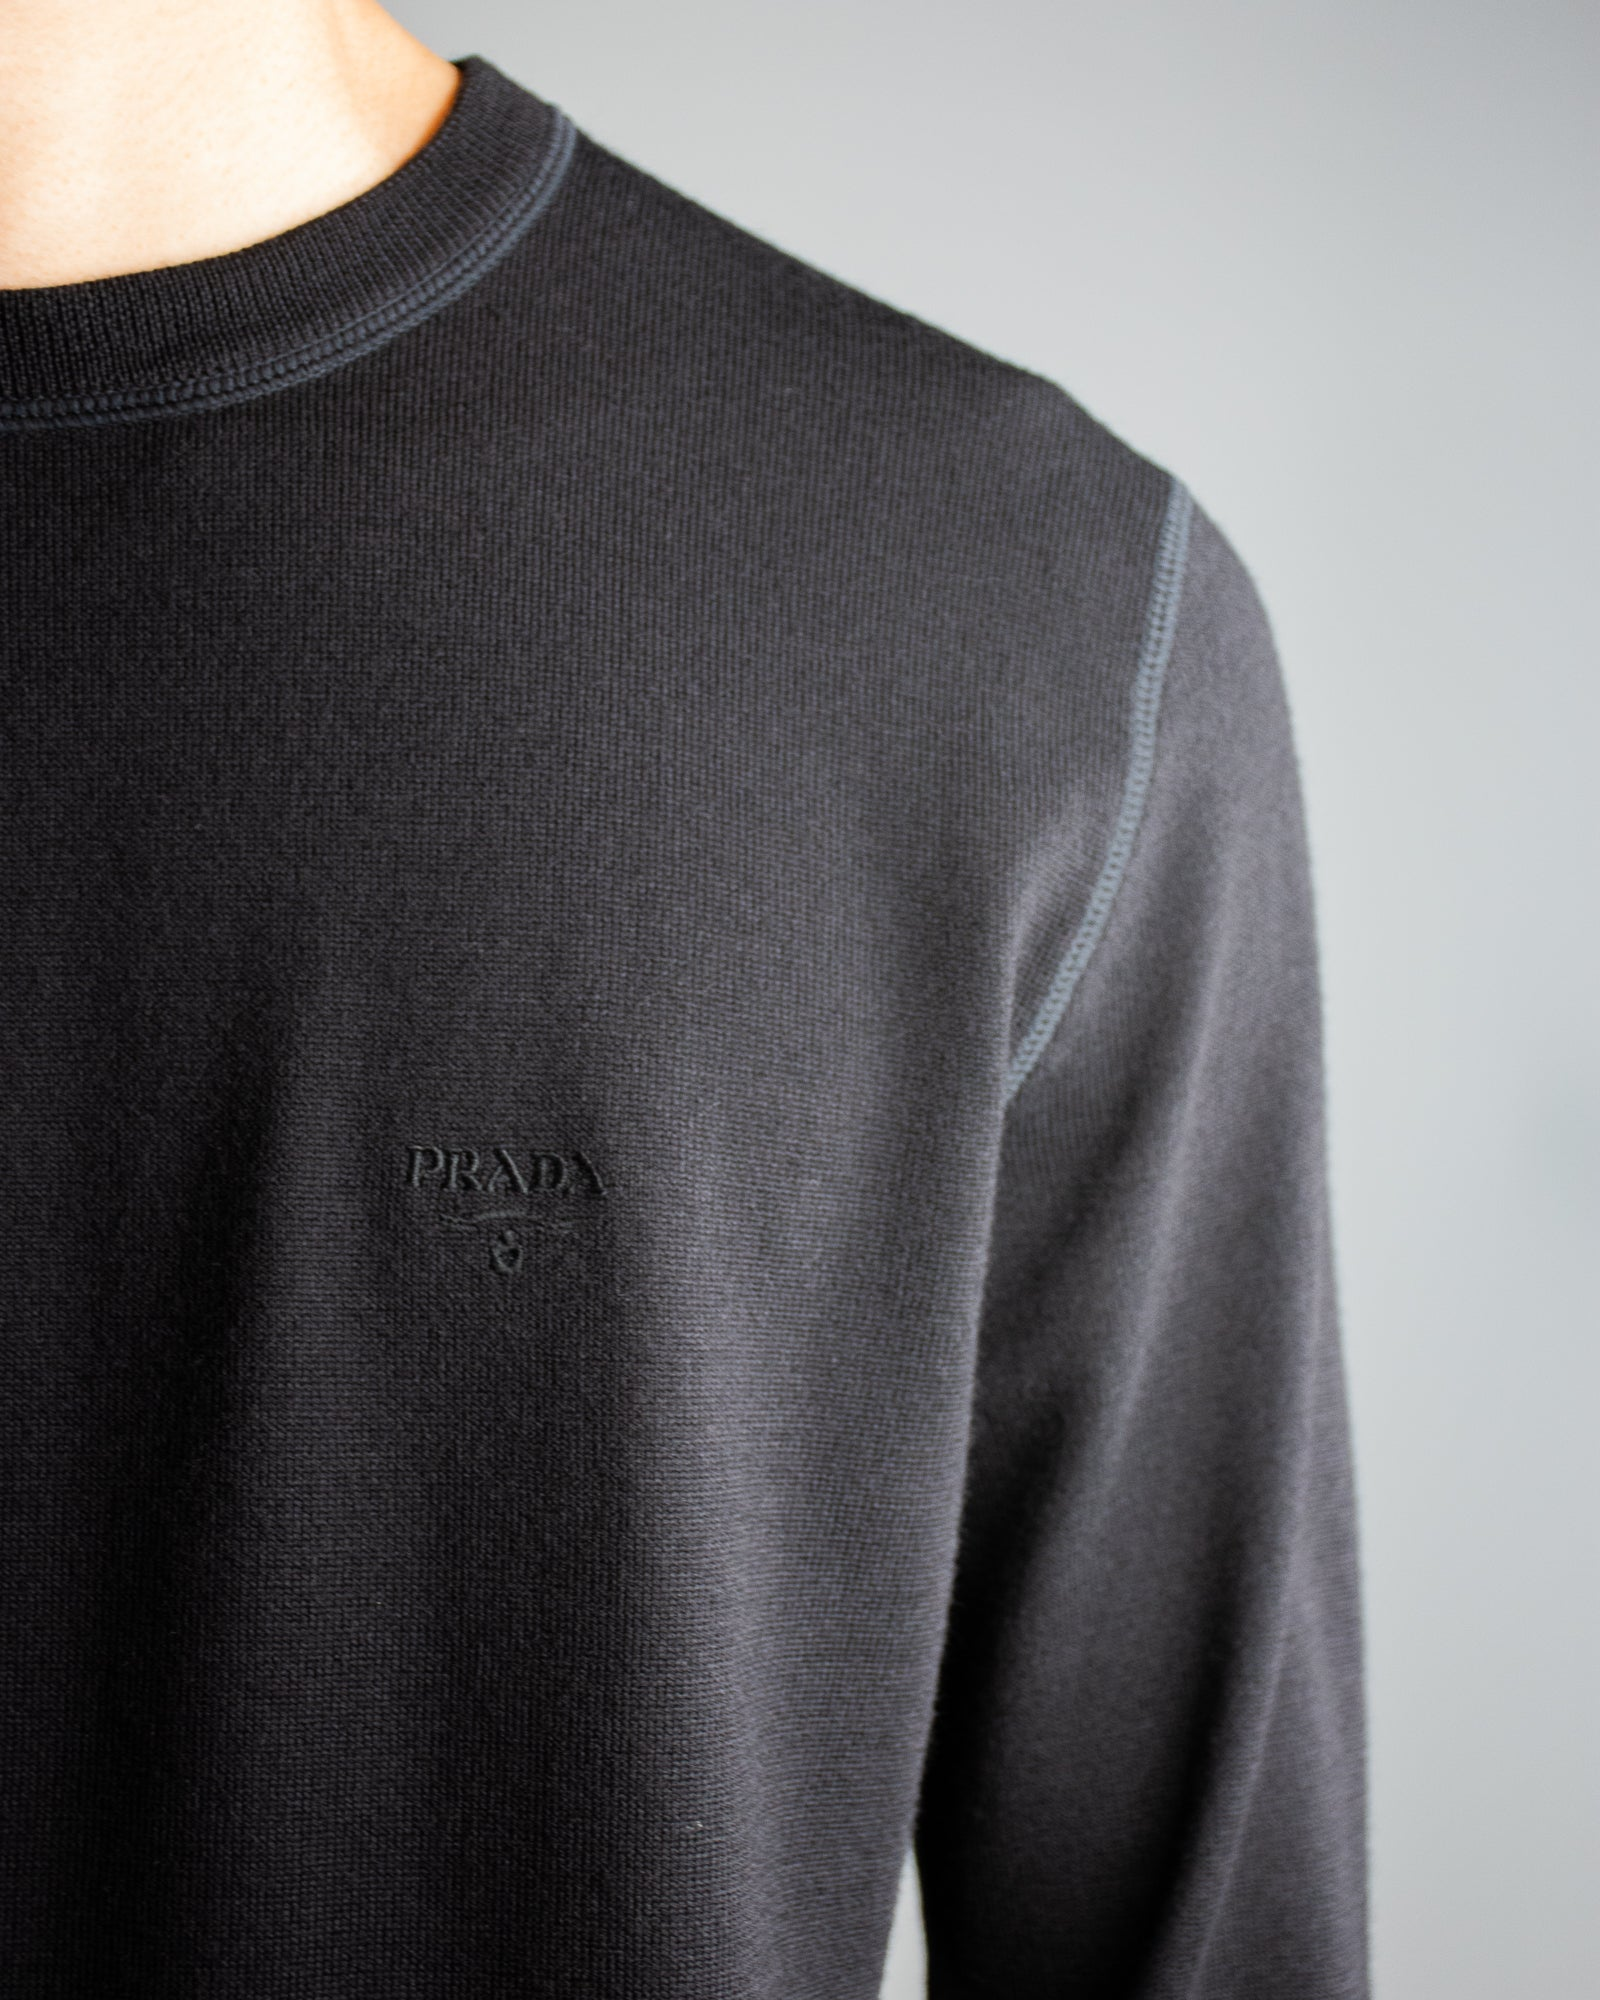 PRADA Crew Neck Knit